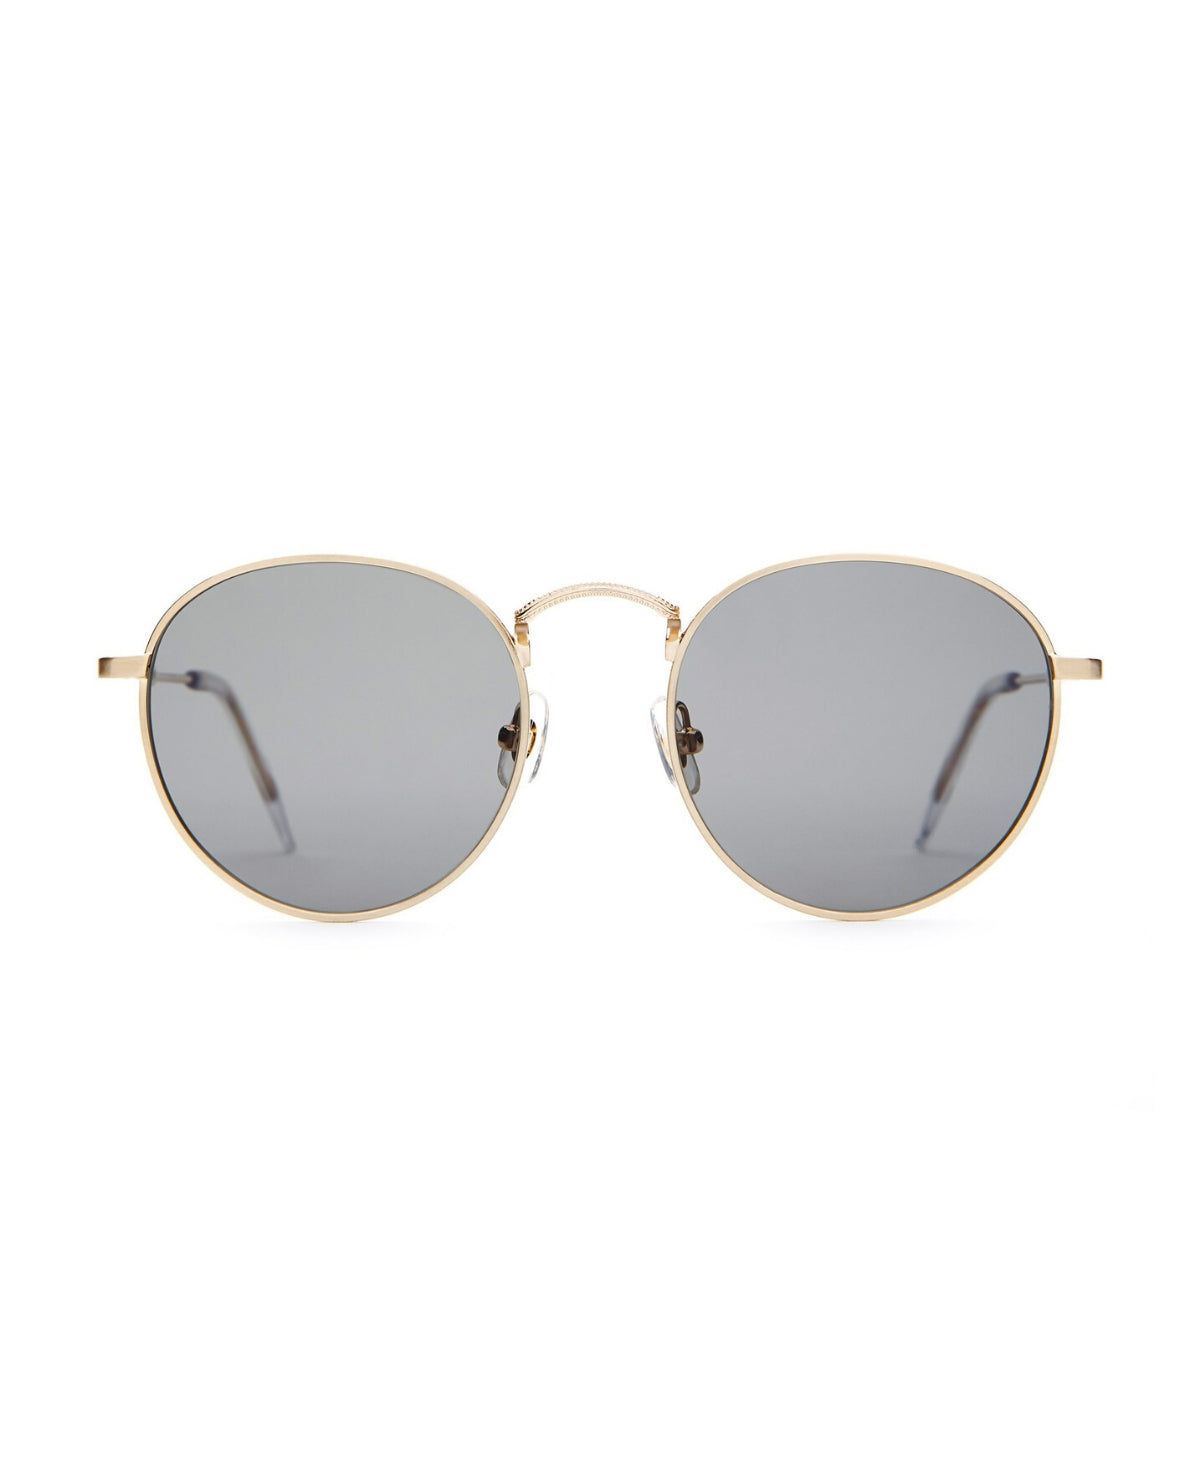 CRAP EYEWEAR The Tuff Patrol / Brushed Gold & Crystal / Polarized Grey